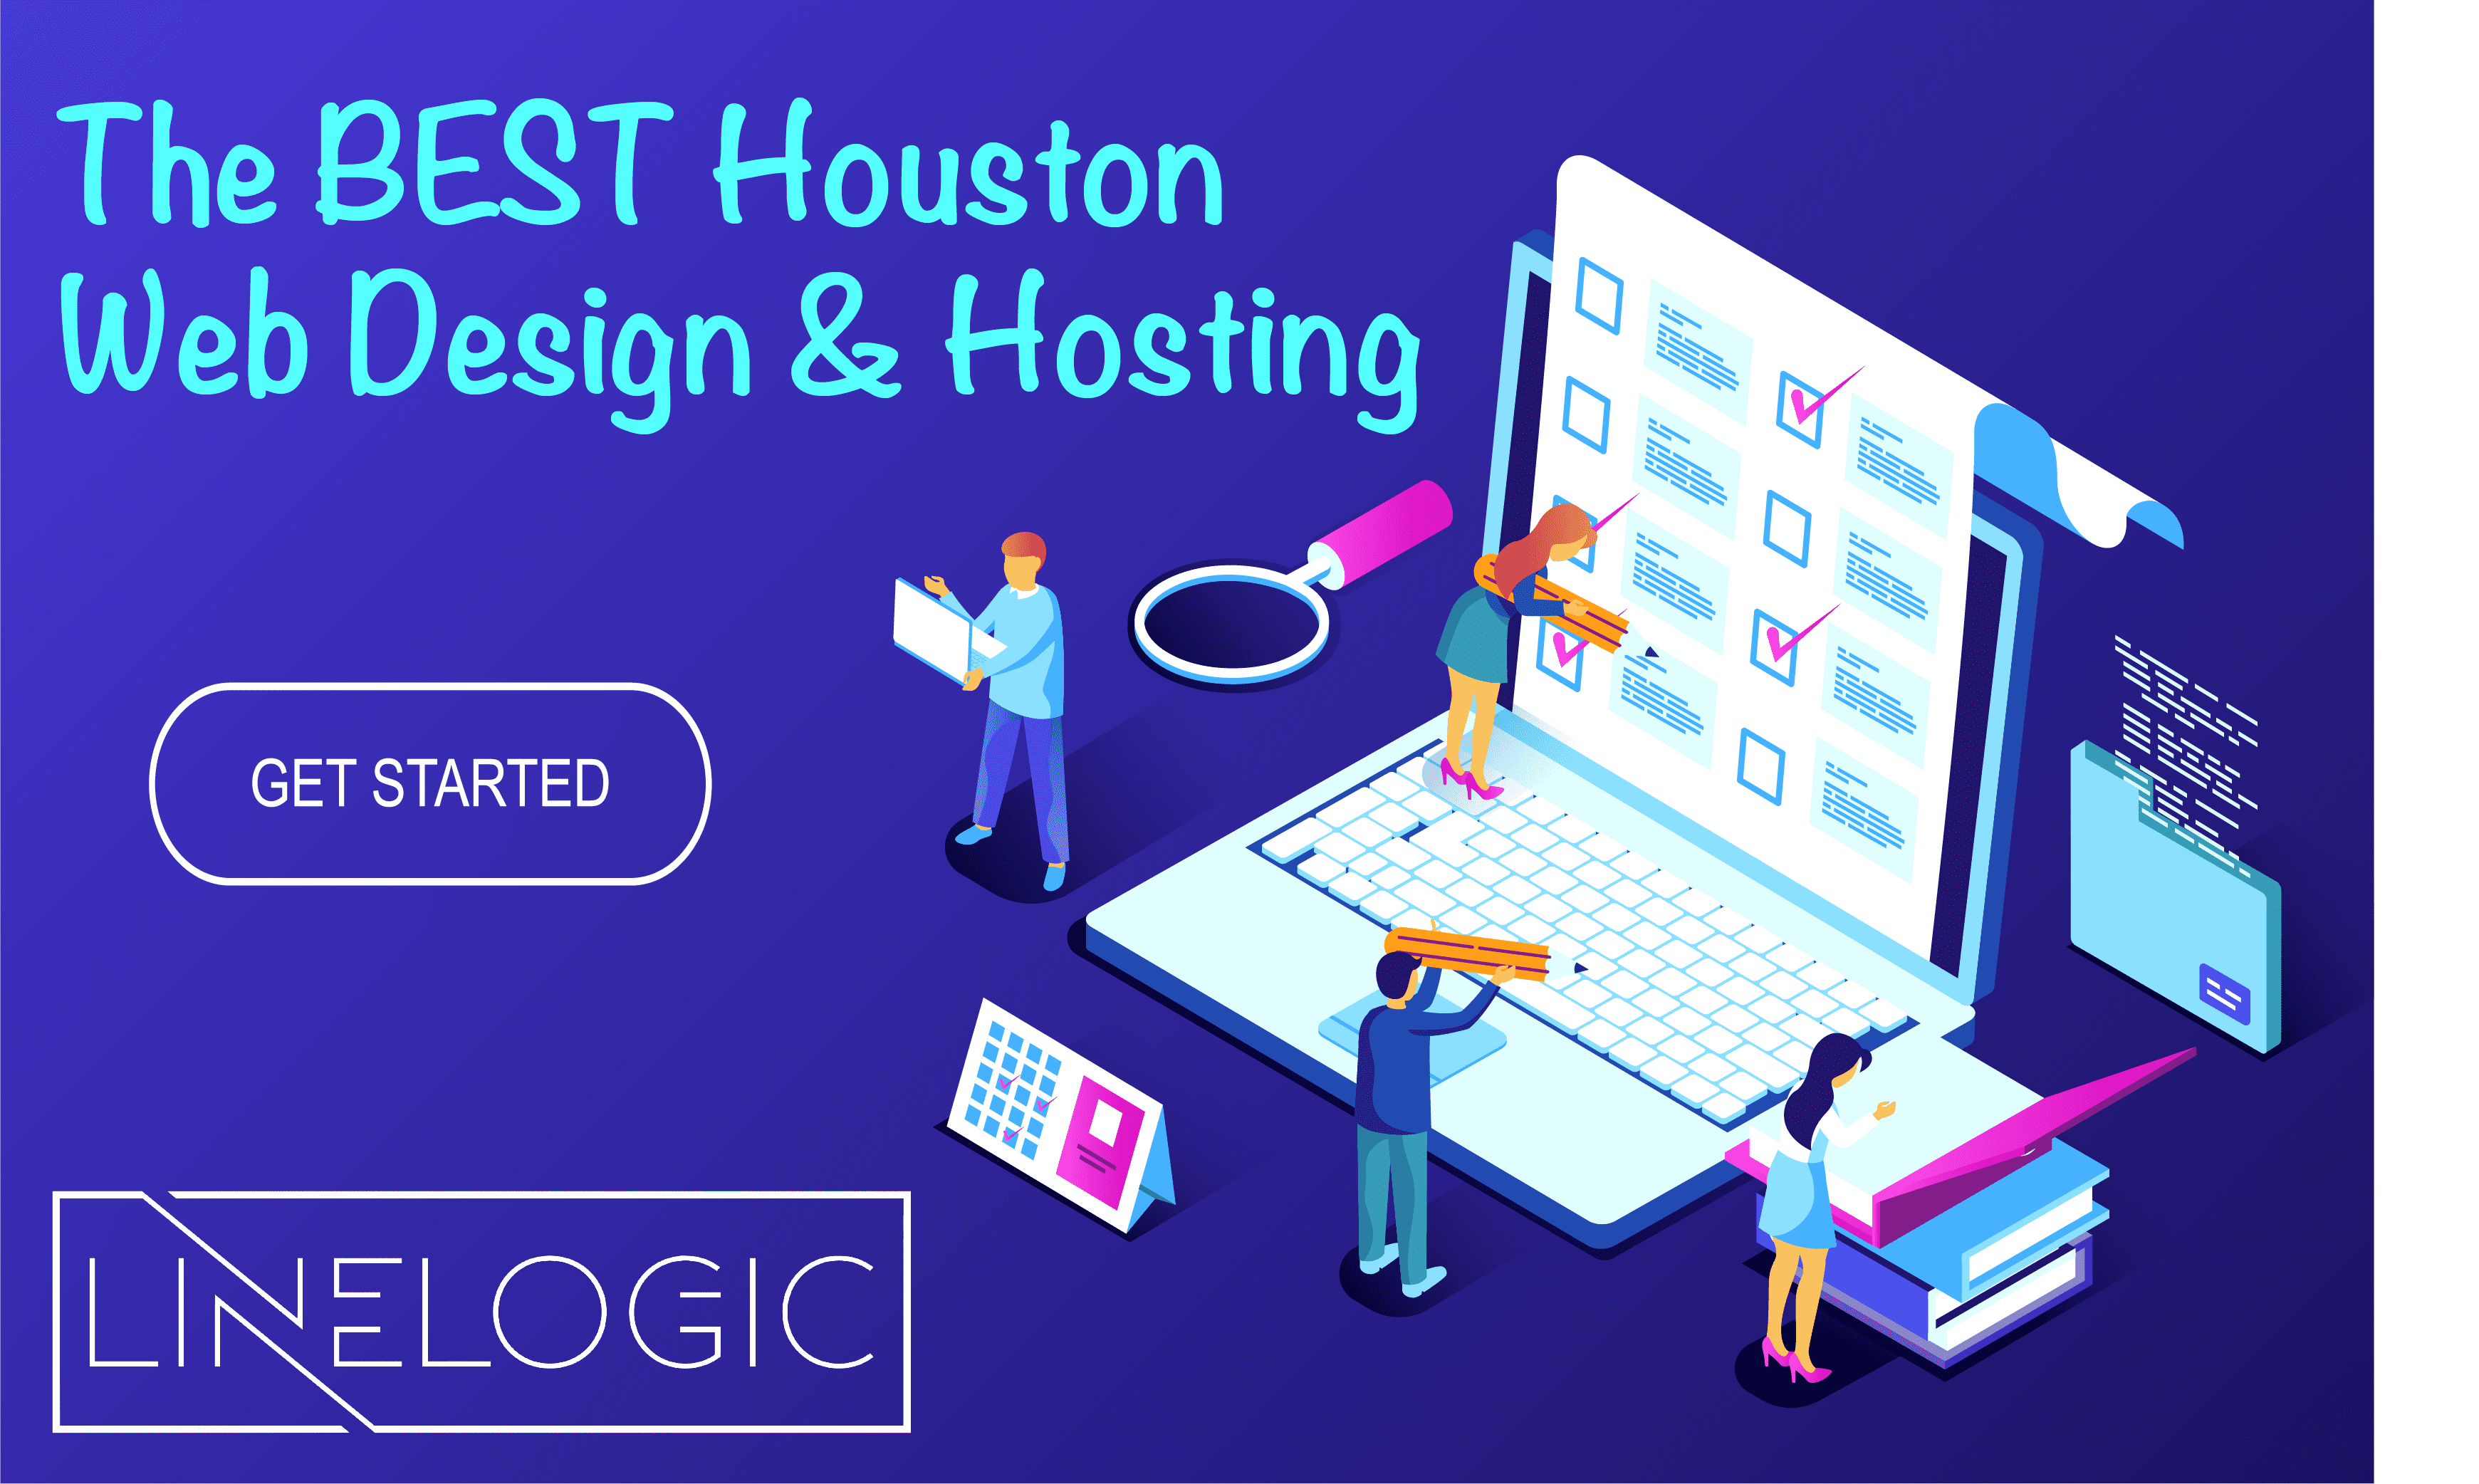 Experience the Best Houston Web Design and Hosting